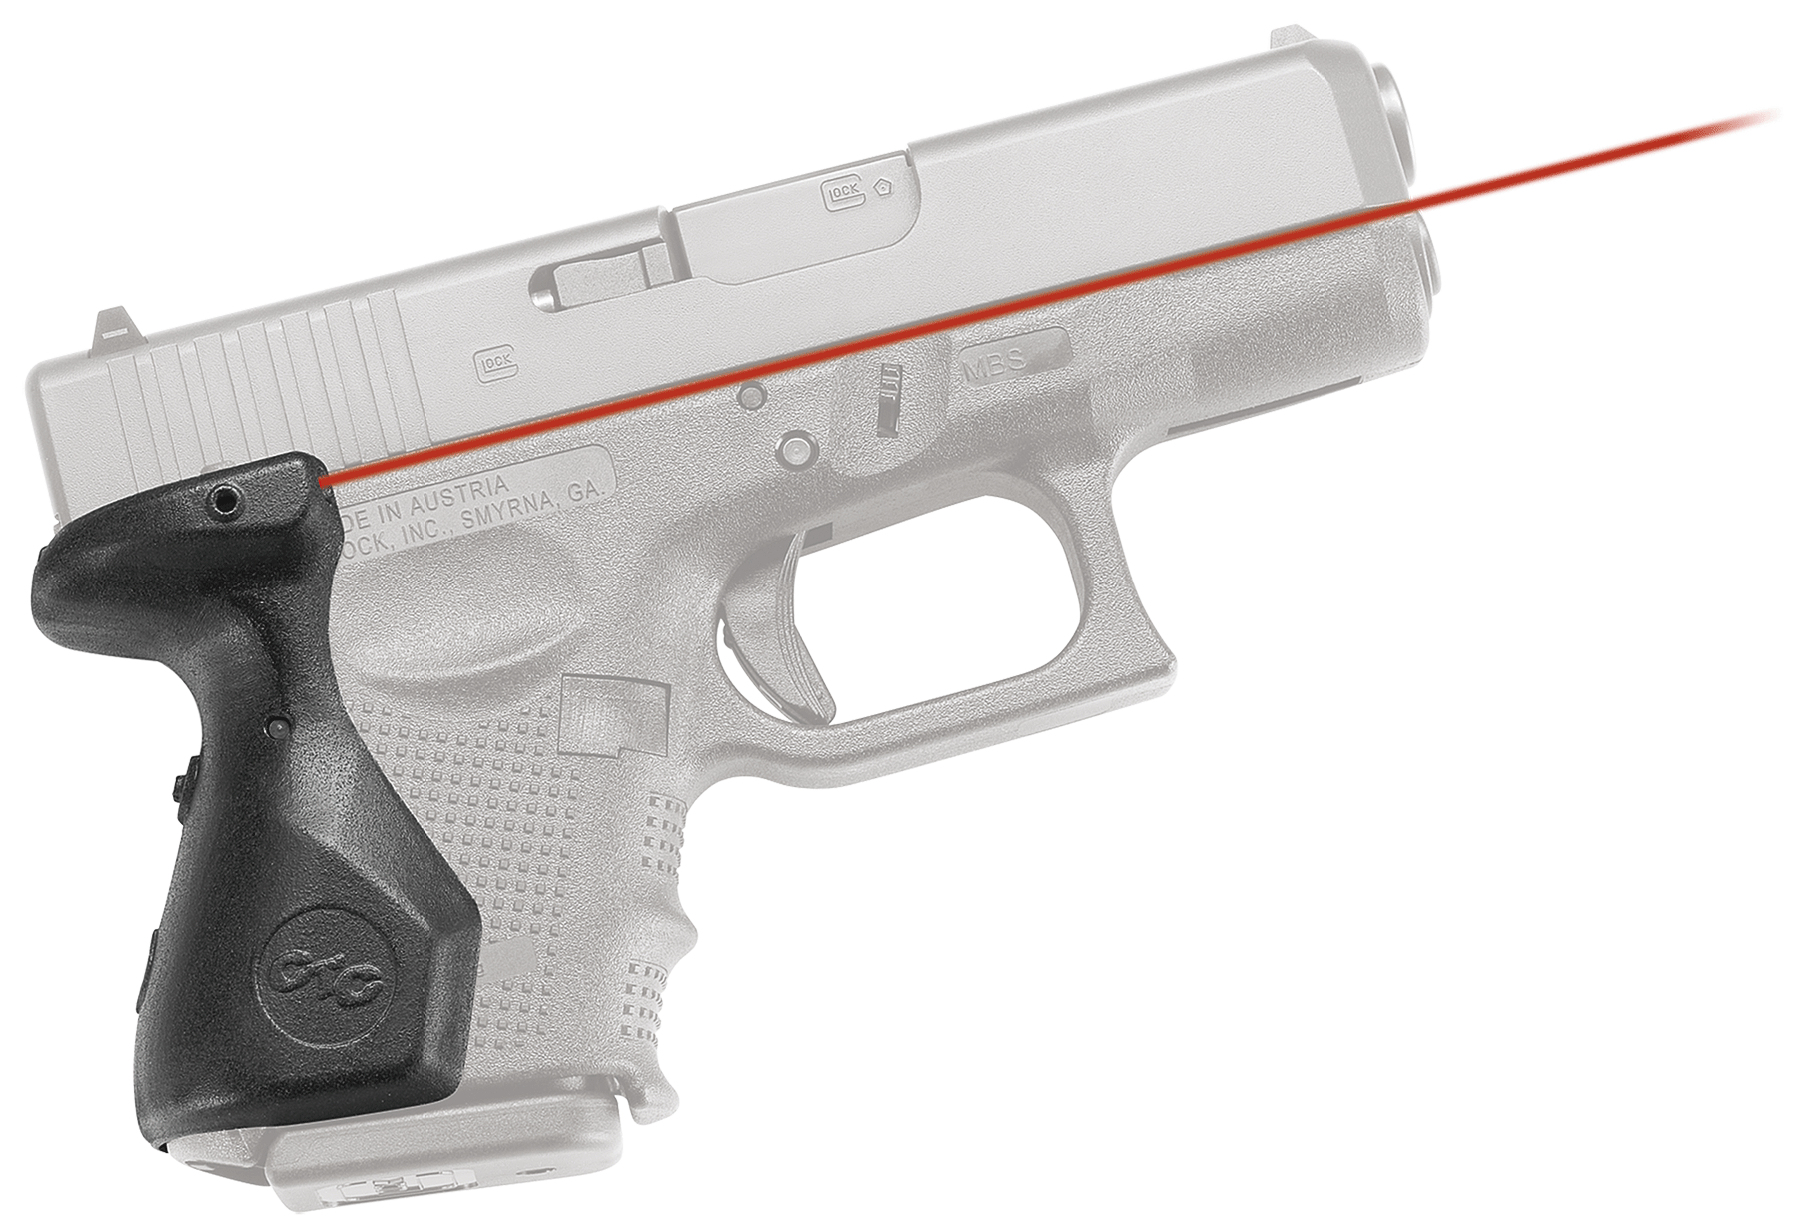 Crimson Trace® Lasergrips® - GLOCK® Gen 4 G26/27/33 - Rear Activation - Red Laser